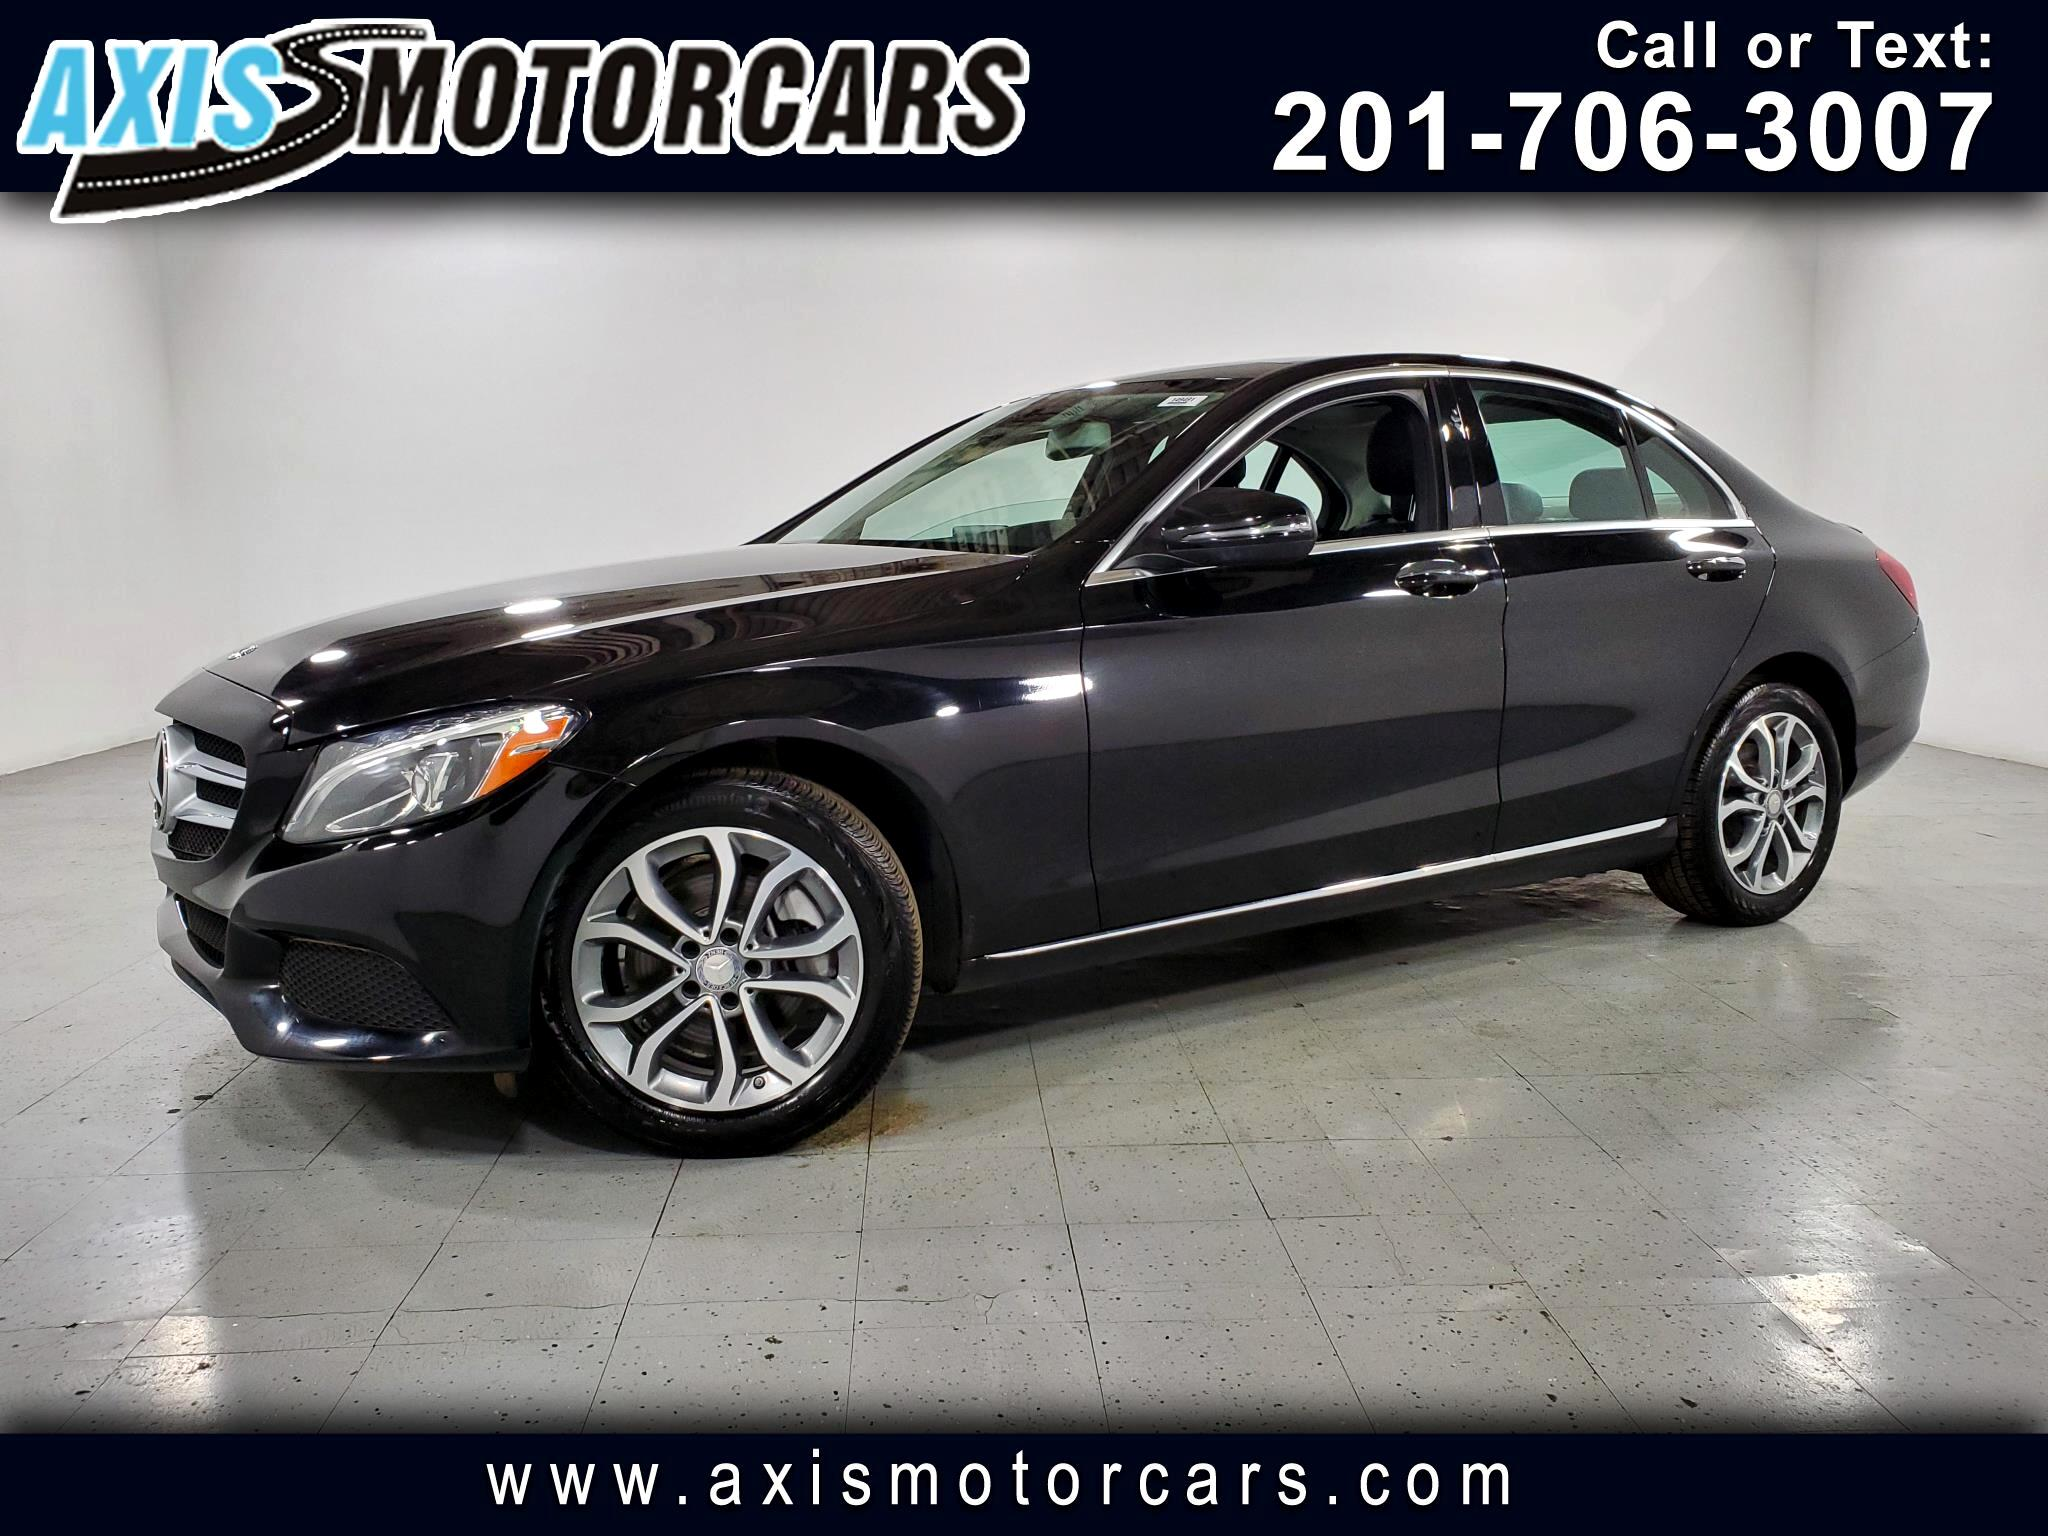 2016 Mercedes-Benz C300 w/Panoramic Roof Burmester Sound System Navigation